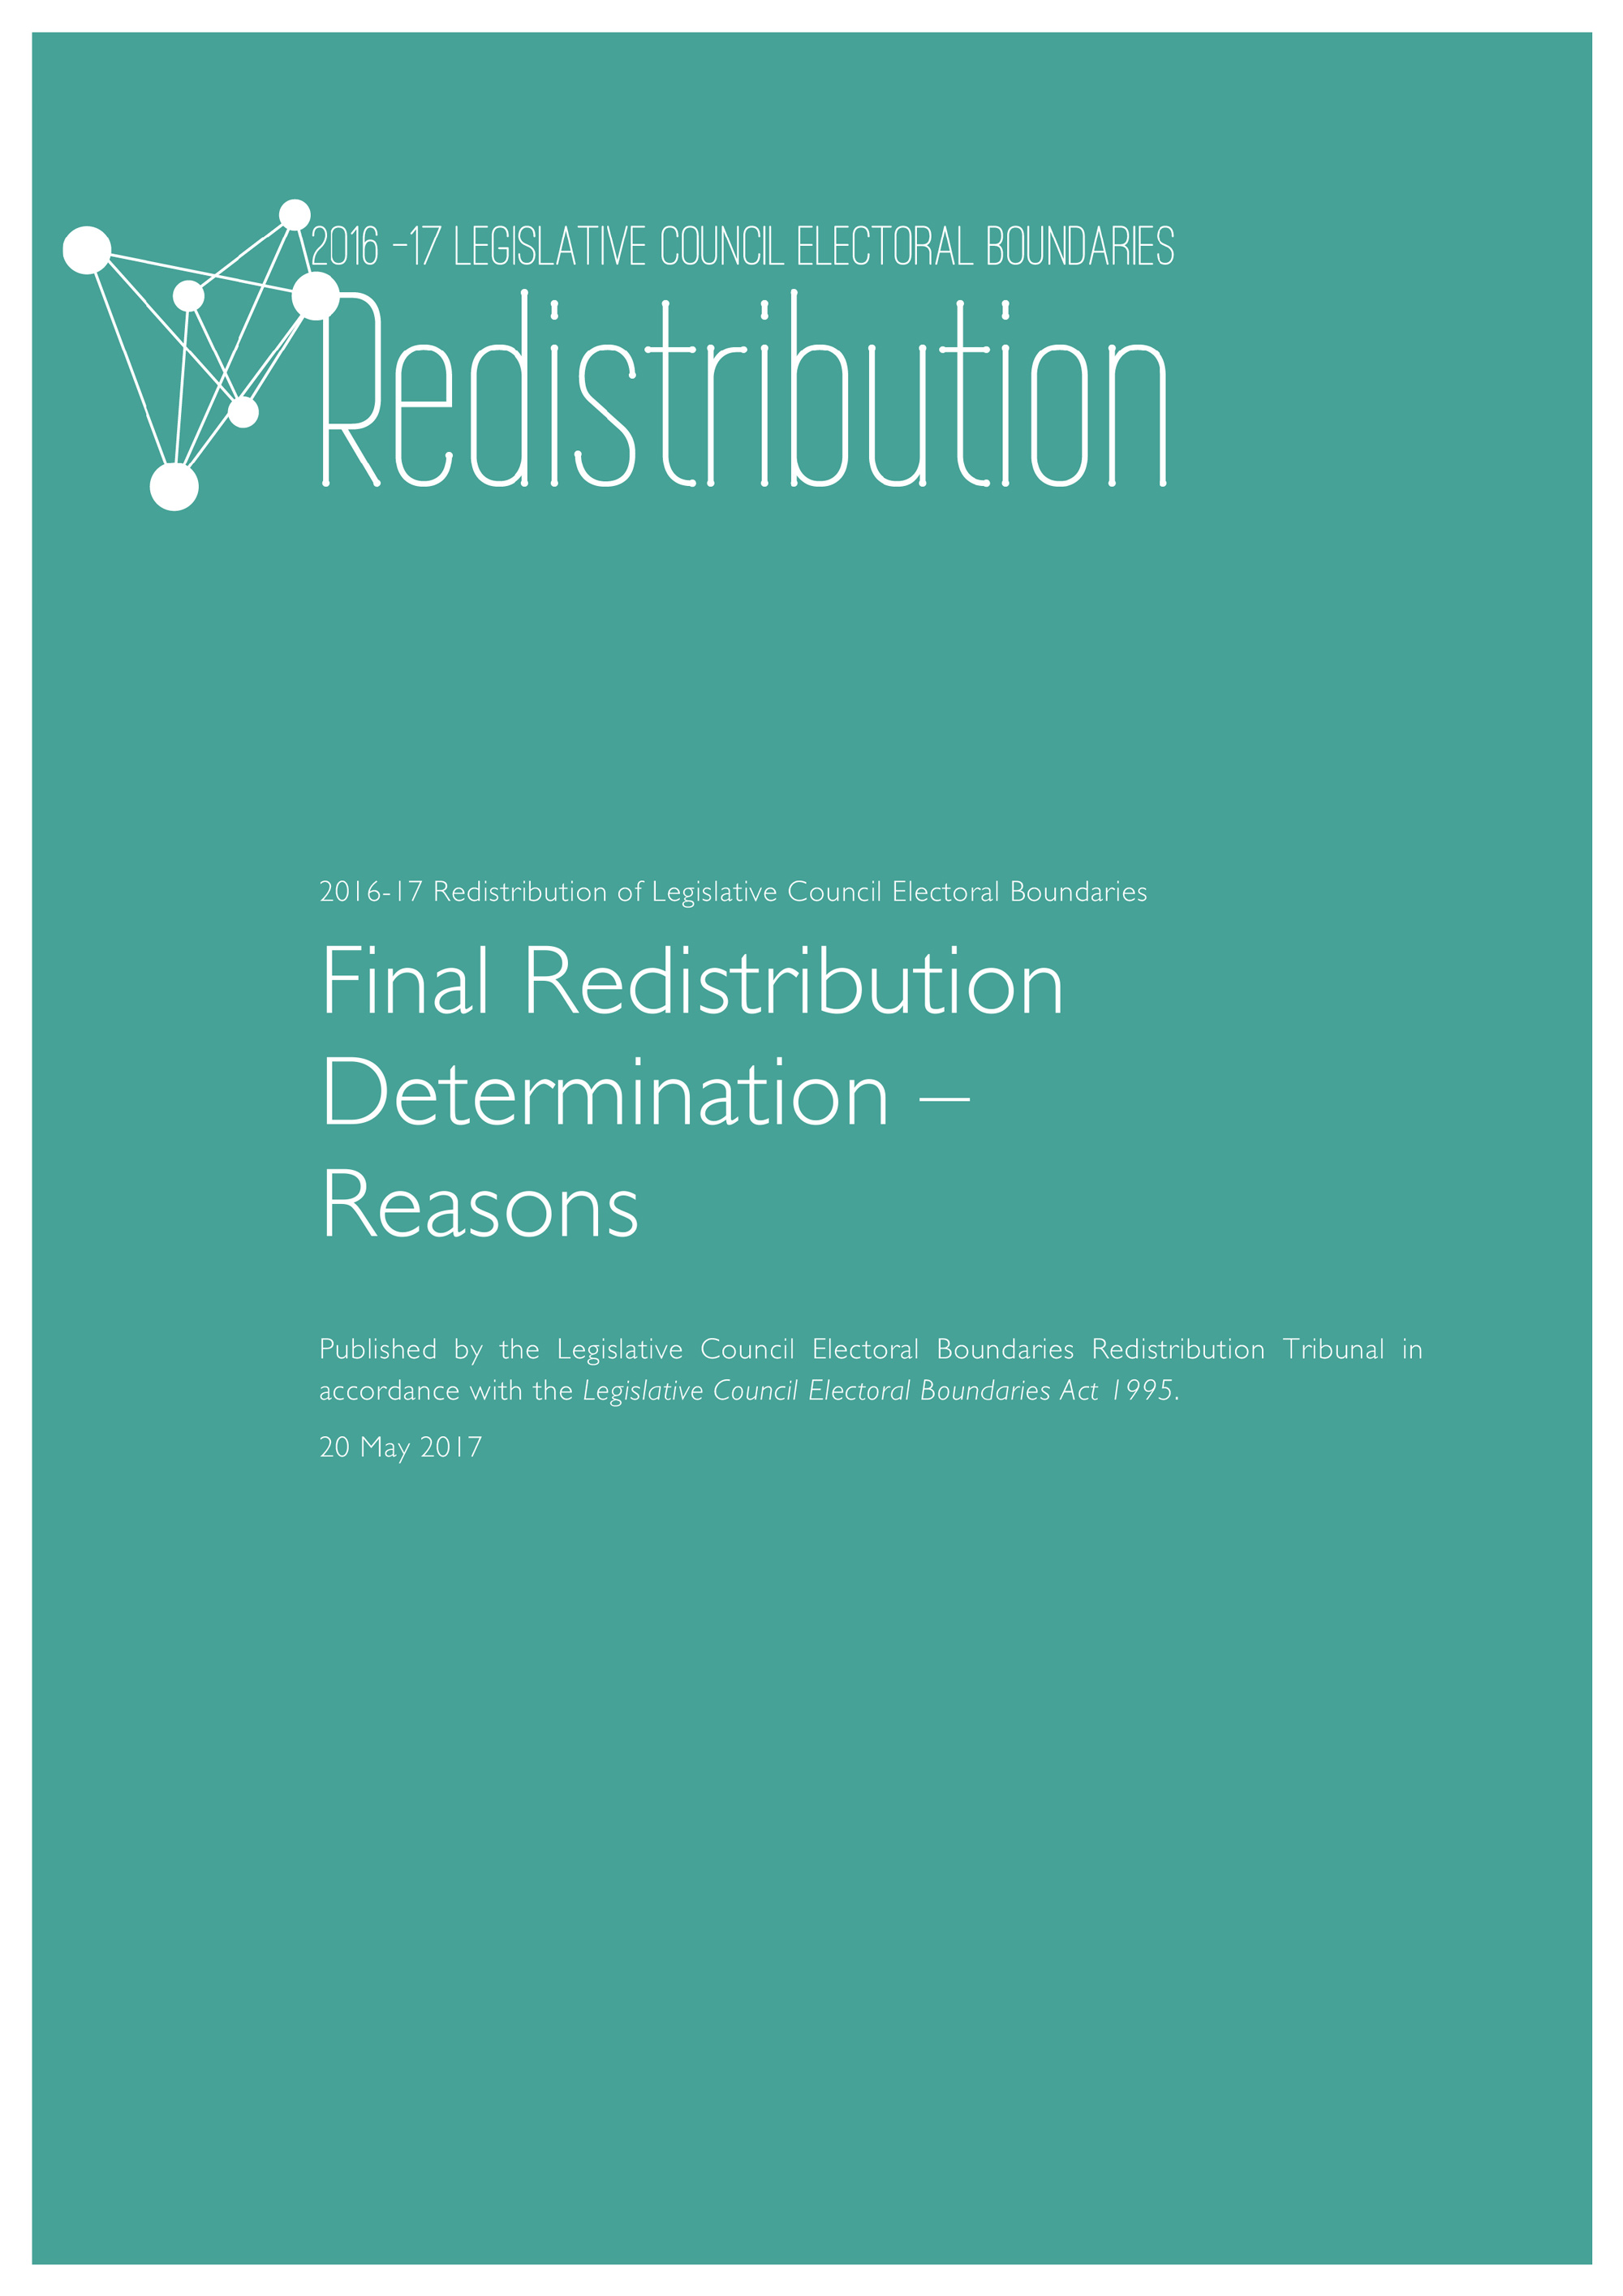 Image of Final Redistribution Determination - Reasons booklet cover